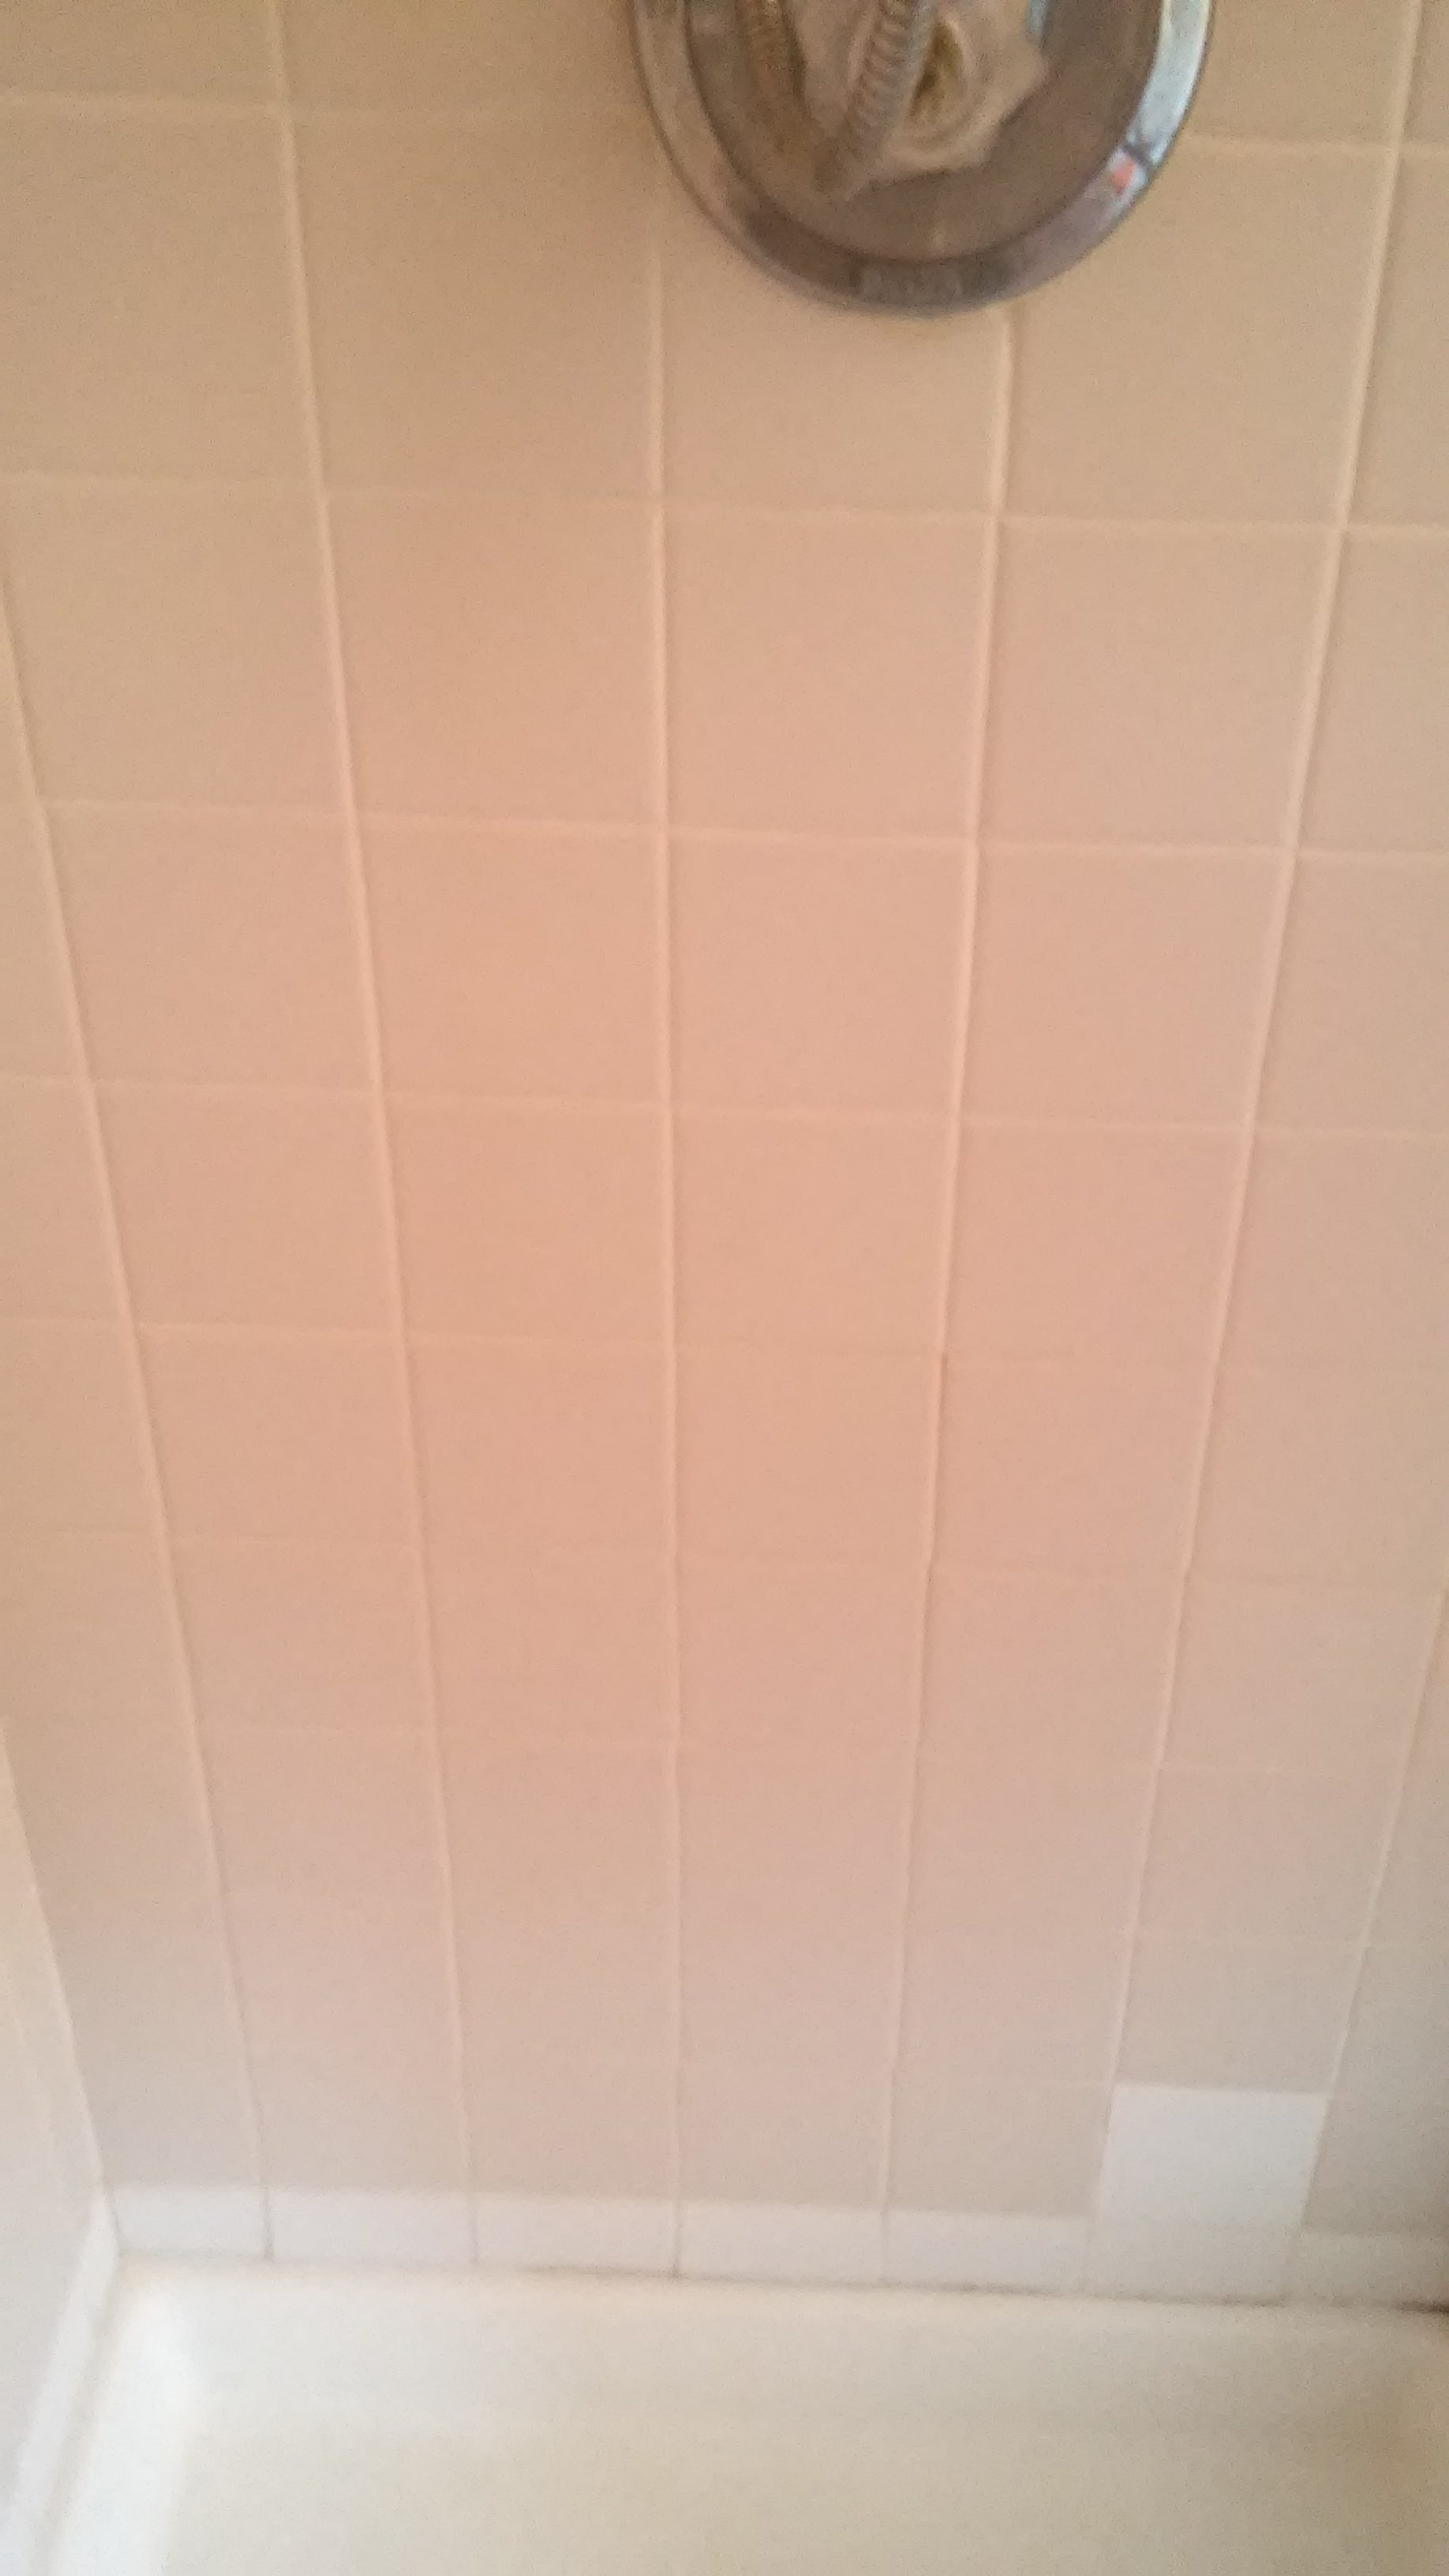 Shower tile clean before